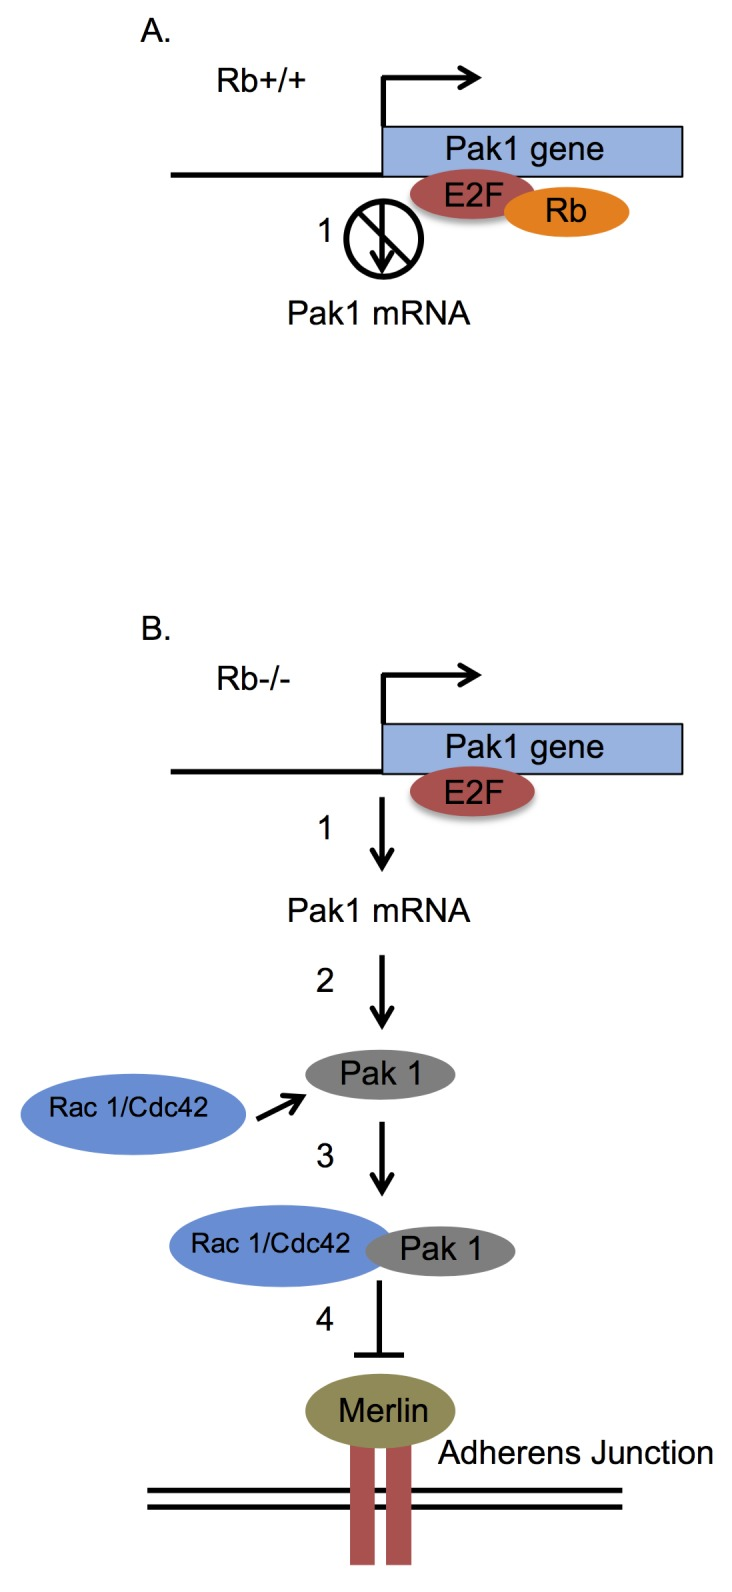 Model linking Rb function to cell adhesion via control of Pak1 expression. (A) Rb-expressing osteoblasts show significantly diminished Pak1 expression relative to their Rb-deficient counterparts since Rb binds to E2F1 in the Pak1 promoter and blocks its activity. This can be either by direct interference with E2F1's trans-activating capacity or by recruitment of histone deacetylases to E2F1-sensitive promoters ( 1 ). (B) In the absence of Rb, the unrestricted E2F1 action induces transcription of the Pak1 gene ( 1 ) with consequent translation of the Pak1 protein ( 2 ). Once translated, Pak1 binds and is activated by a Rho GTPase such as Rac1 or Cdc42 to form an active complex (3), which then phosphorylates the merlin tumor suppressor in serine 518 ( 4 ), a phosphorylation that impairs merlin function. Because merlin acts mainly by promoting the stabilization of adherens junctions at the cell membrane, loss of merlin function by the Pak1-dependent phosphorylation will bring about a disruption of adherens junctions and therefore of intercellular adhesion.